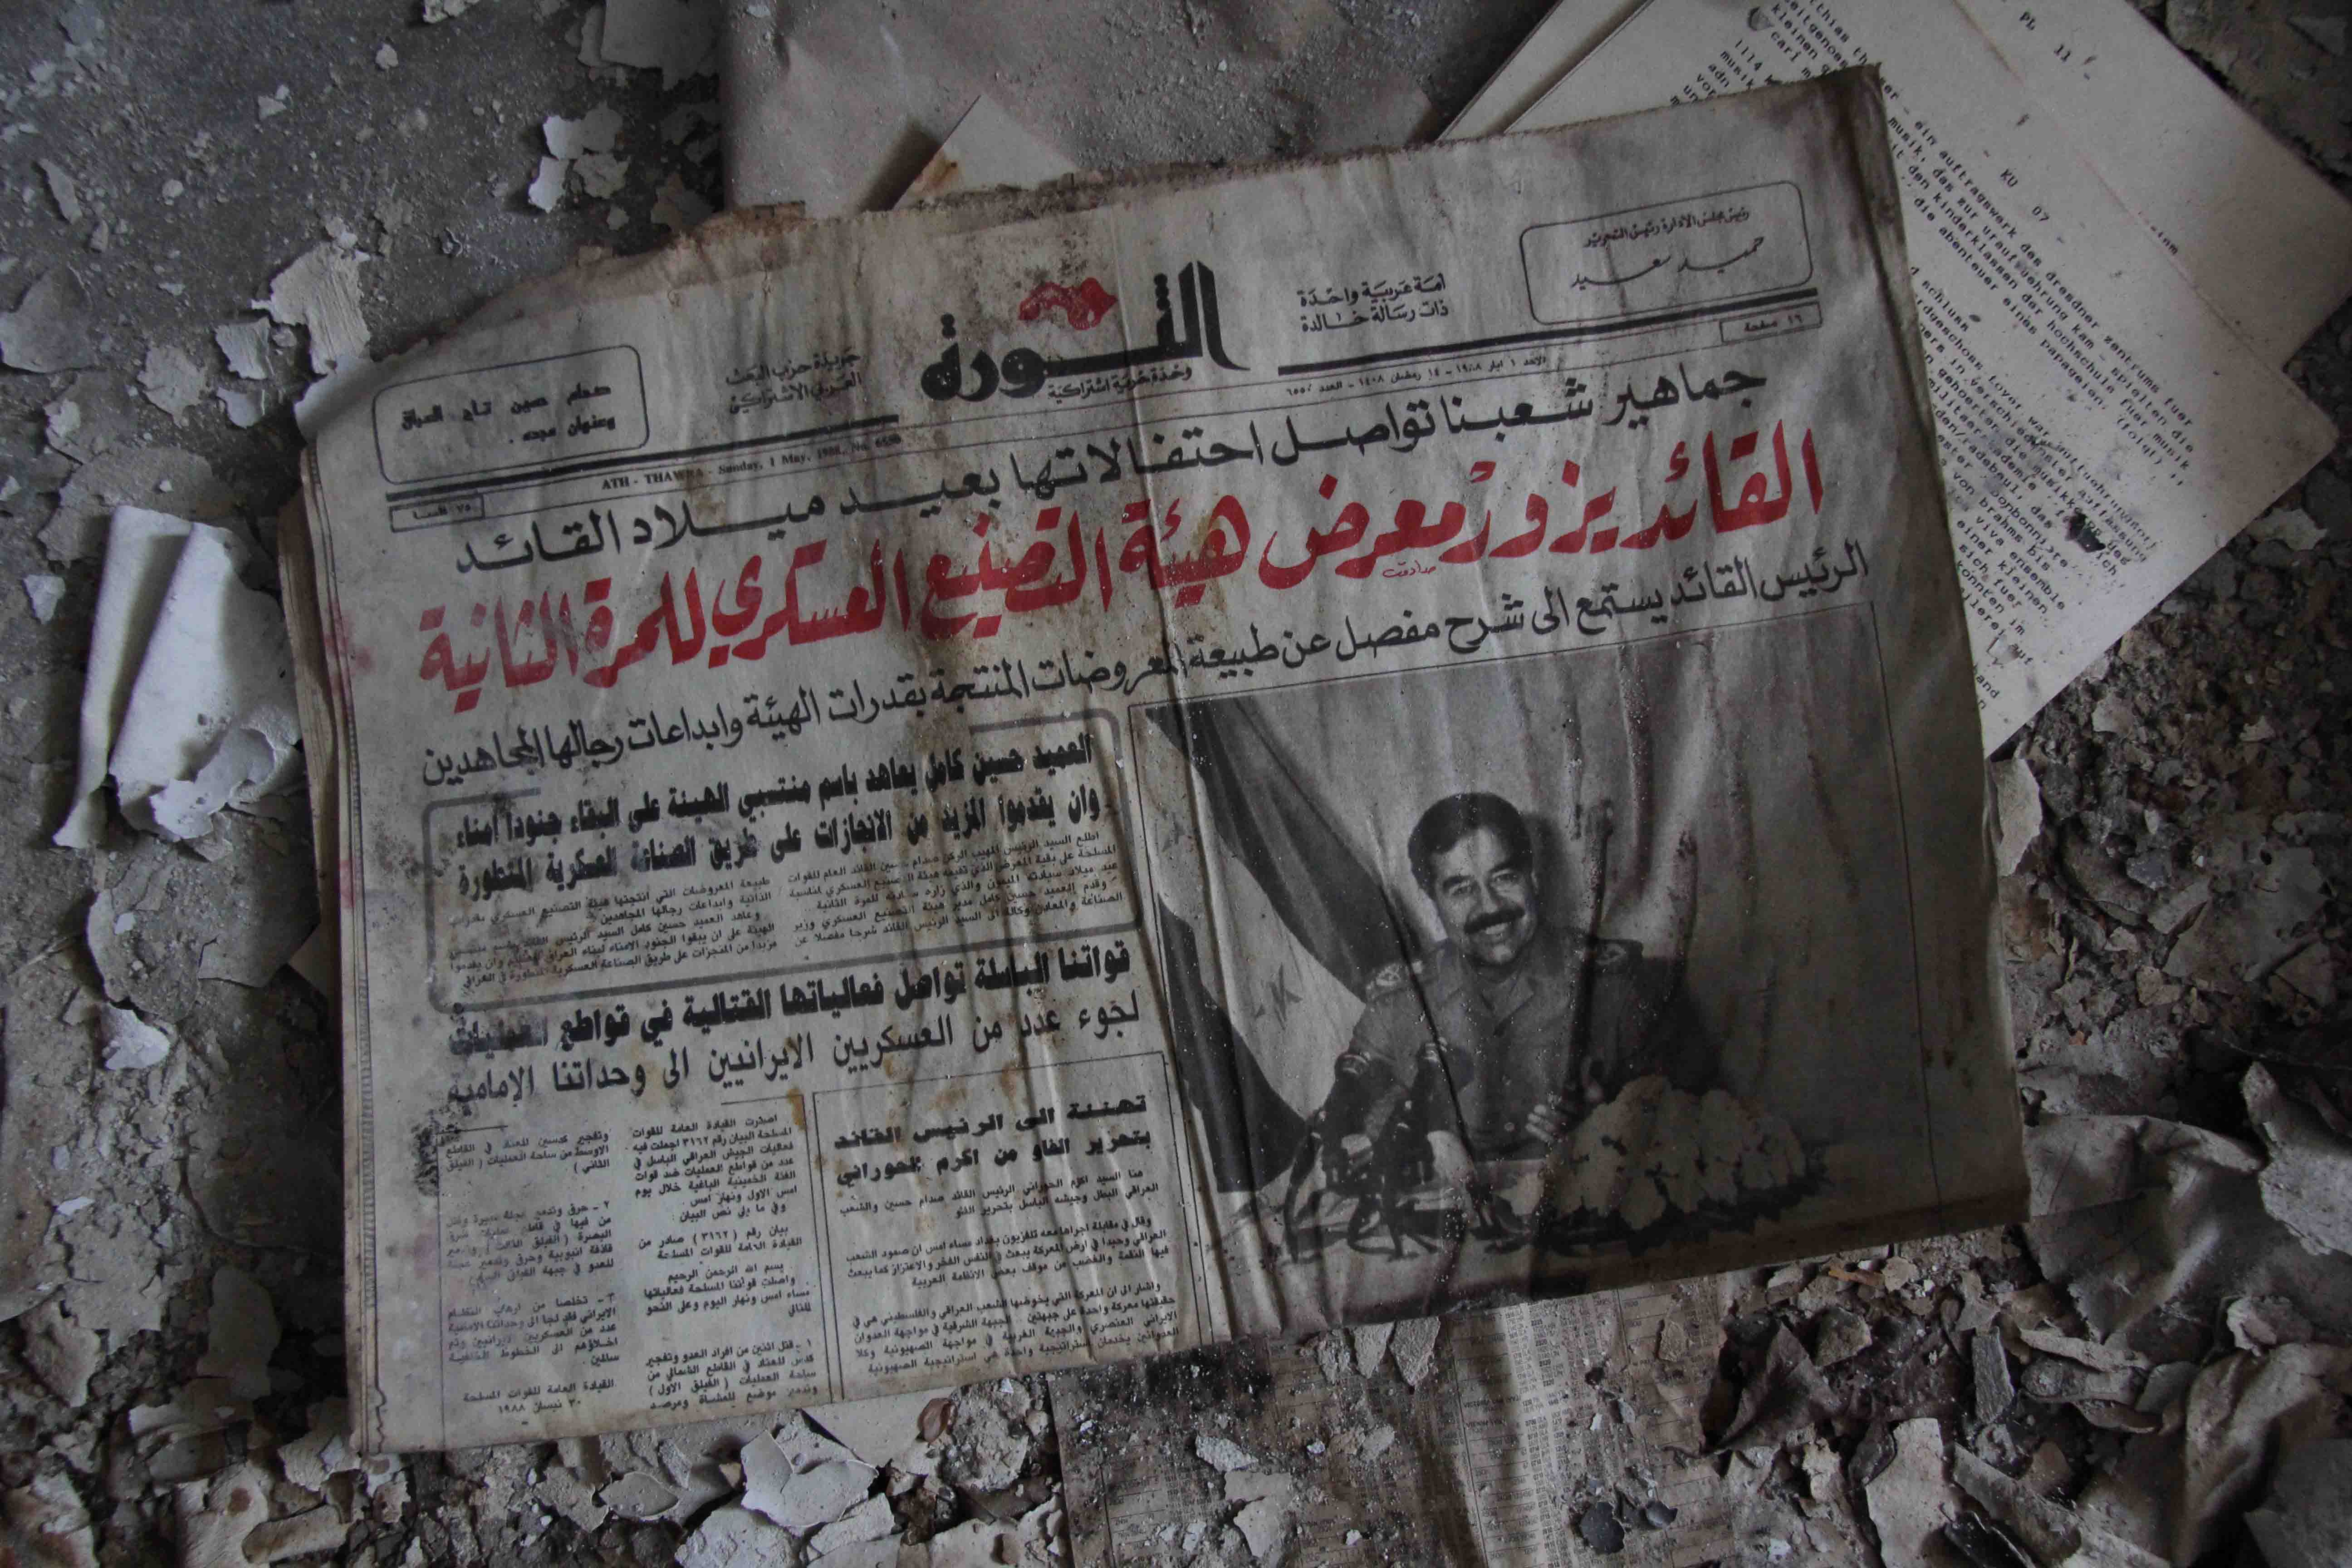 saddam hussein paper The execution of saddam hussein took place on saturday, 30 december 2006 saddam was sentenced to death by hanging, after being convicted of crimes against humanity by the iraqi special tribunal for the murder of 148 iraqi shi'ites in the town of dujail in 1982, in retaliation for an assassination attempt against him.